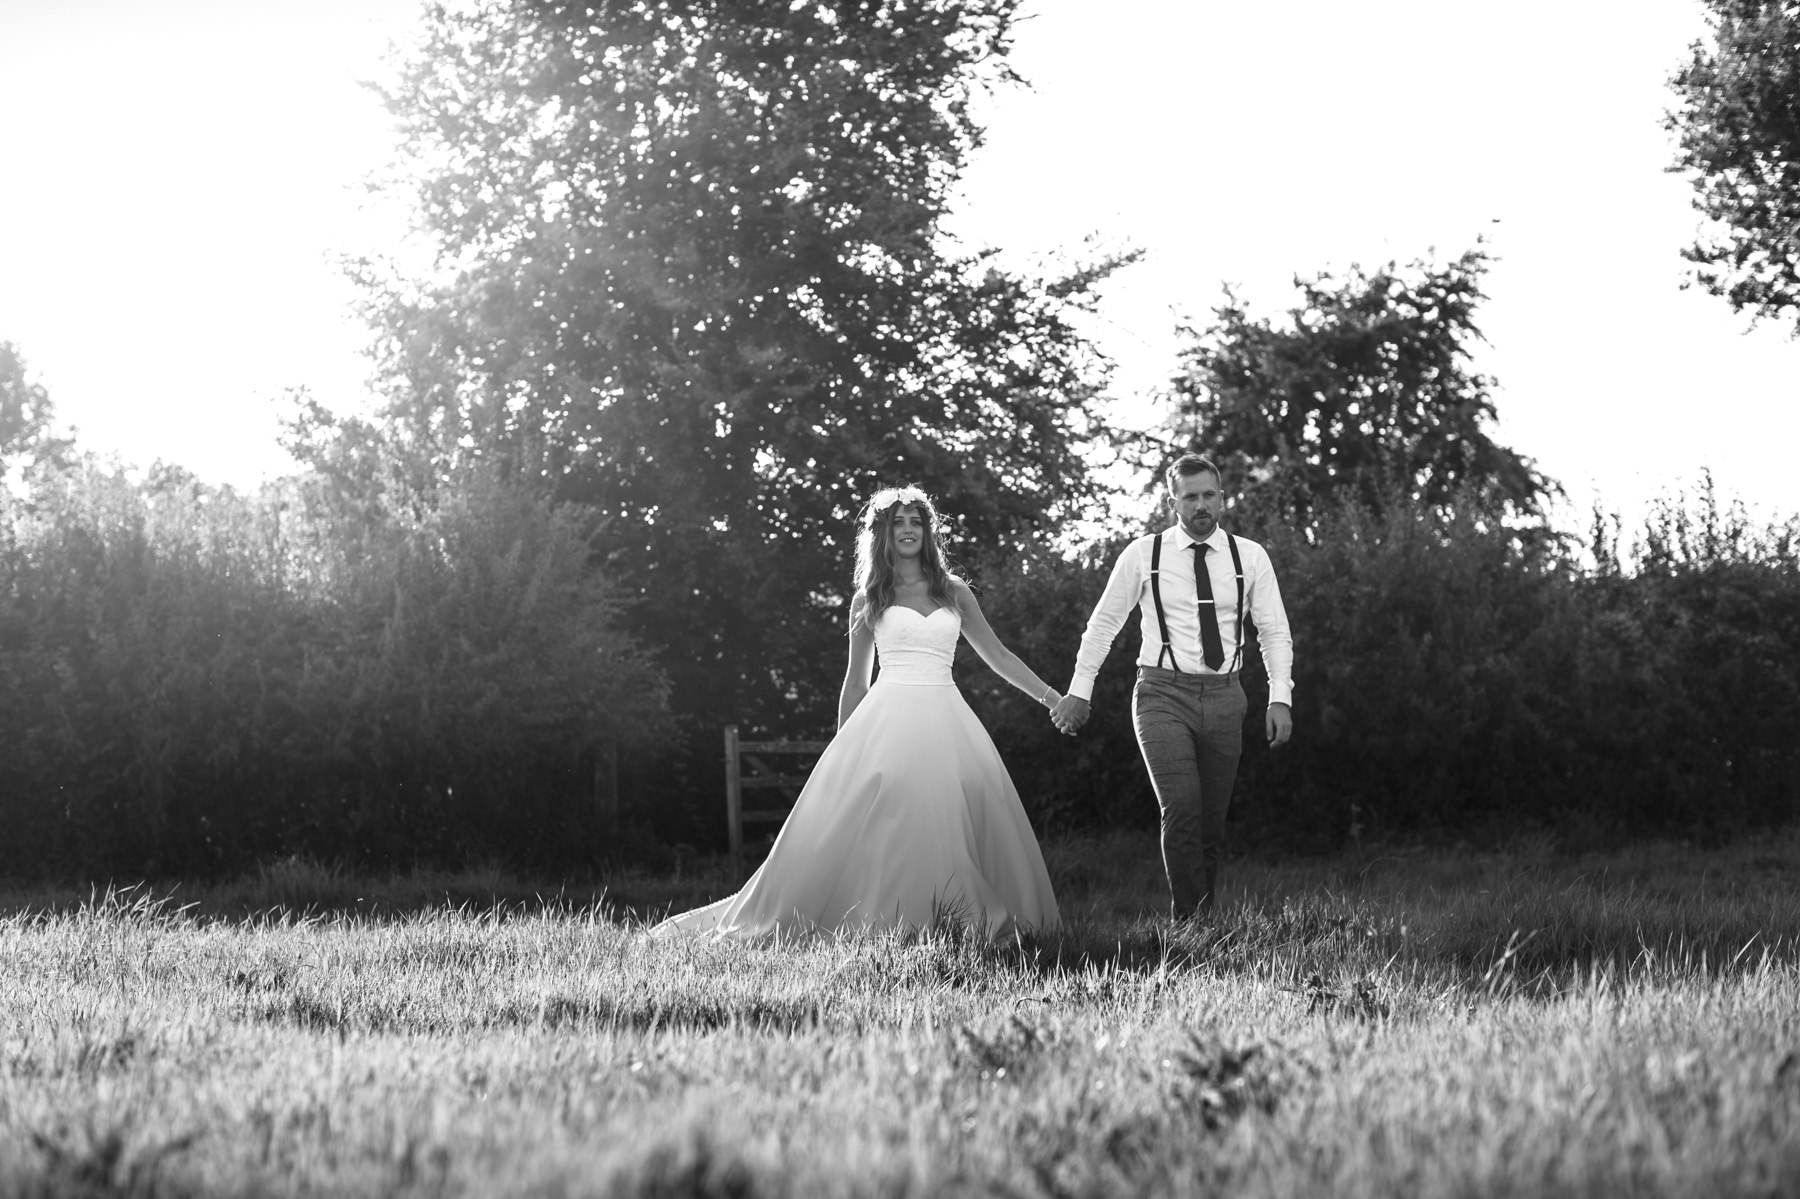 gate-street-barn-wedding-photgraphy-wedding-photography24